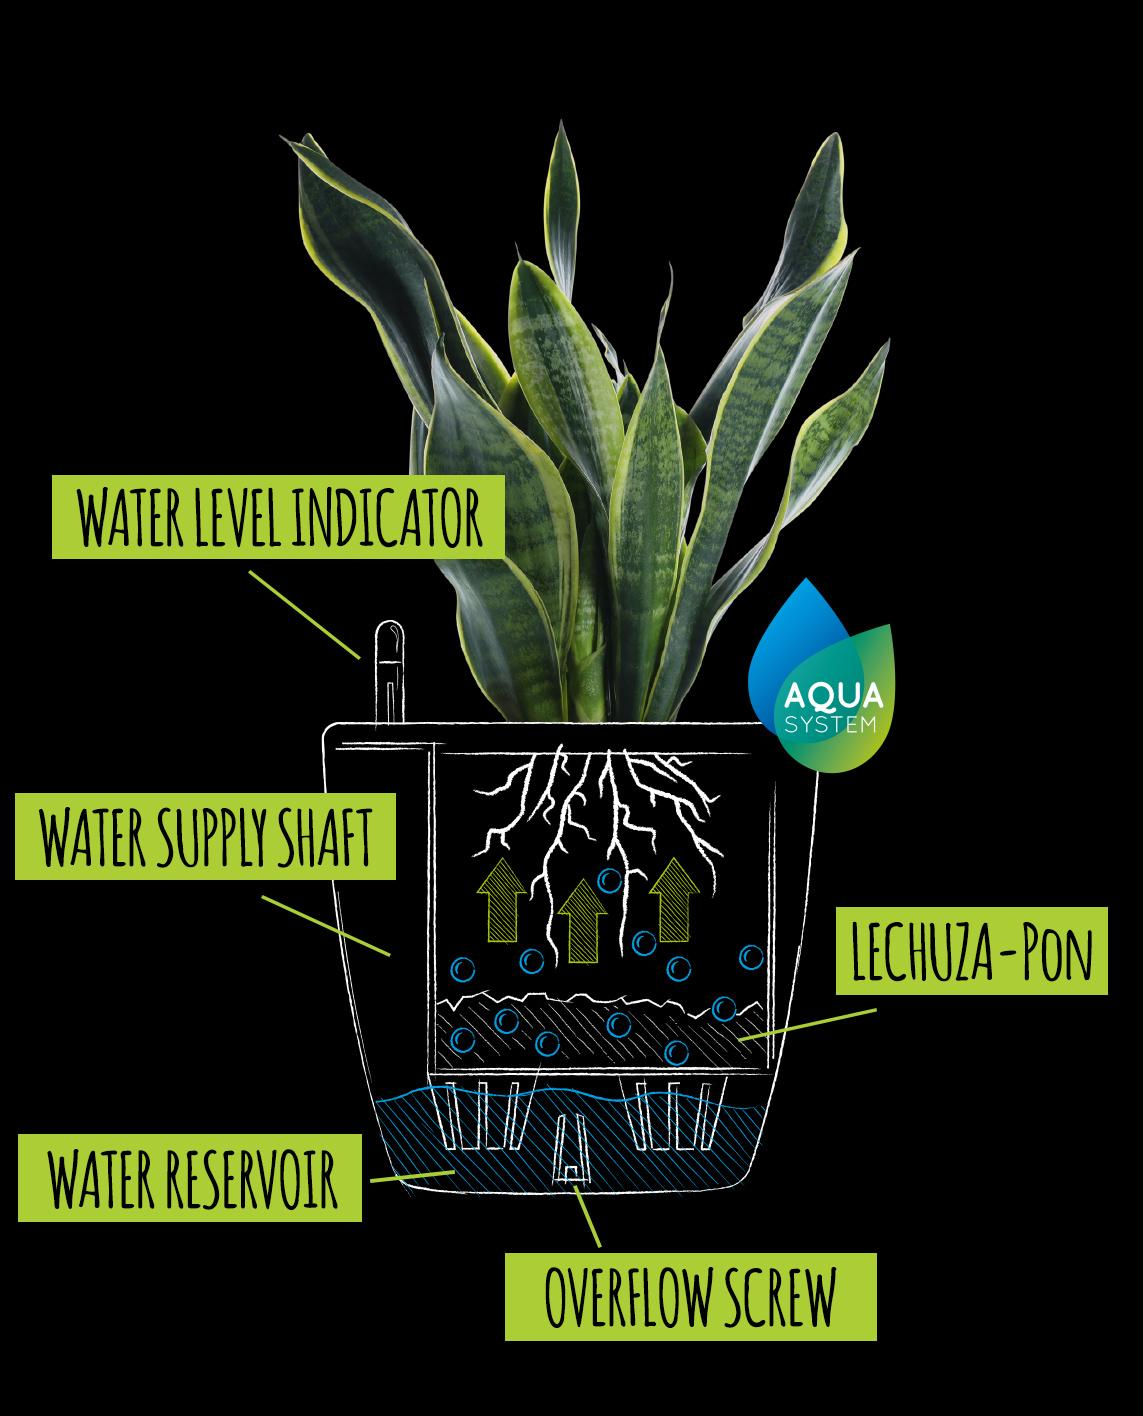 Drawing with explanation of the classic irrigation system